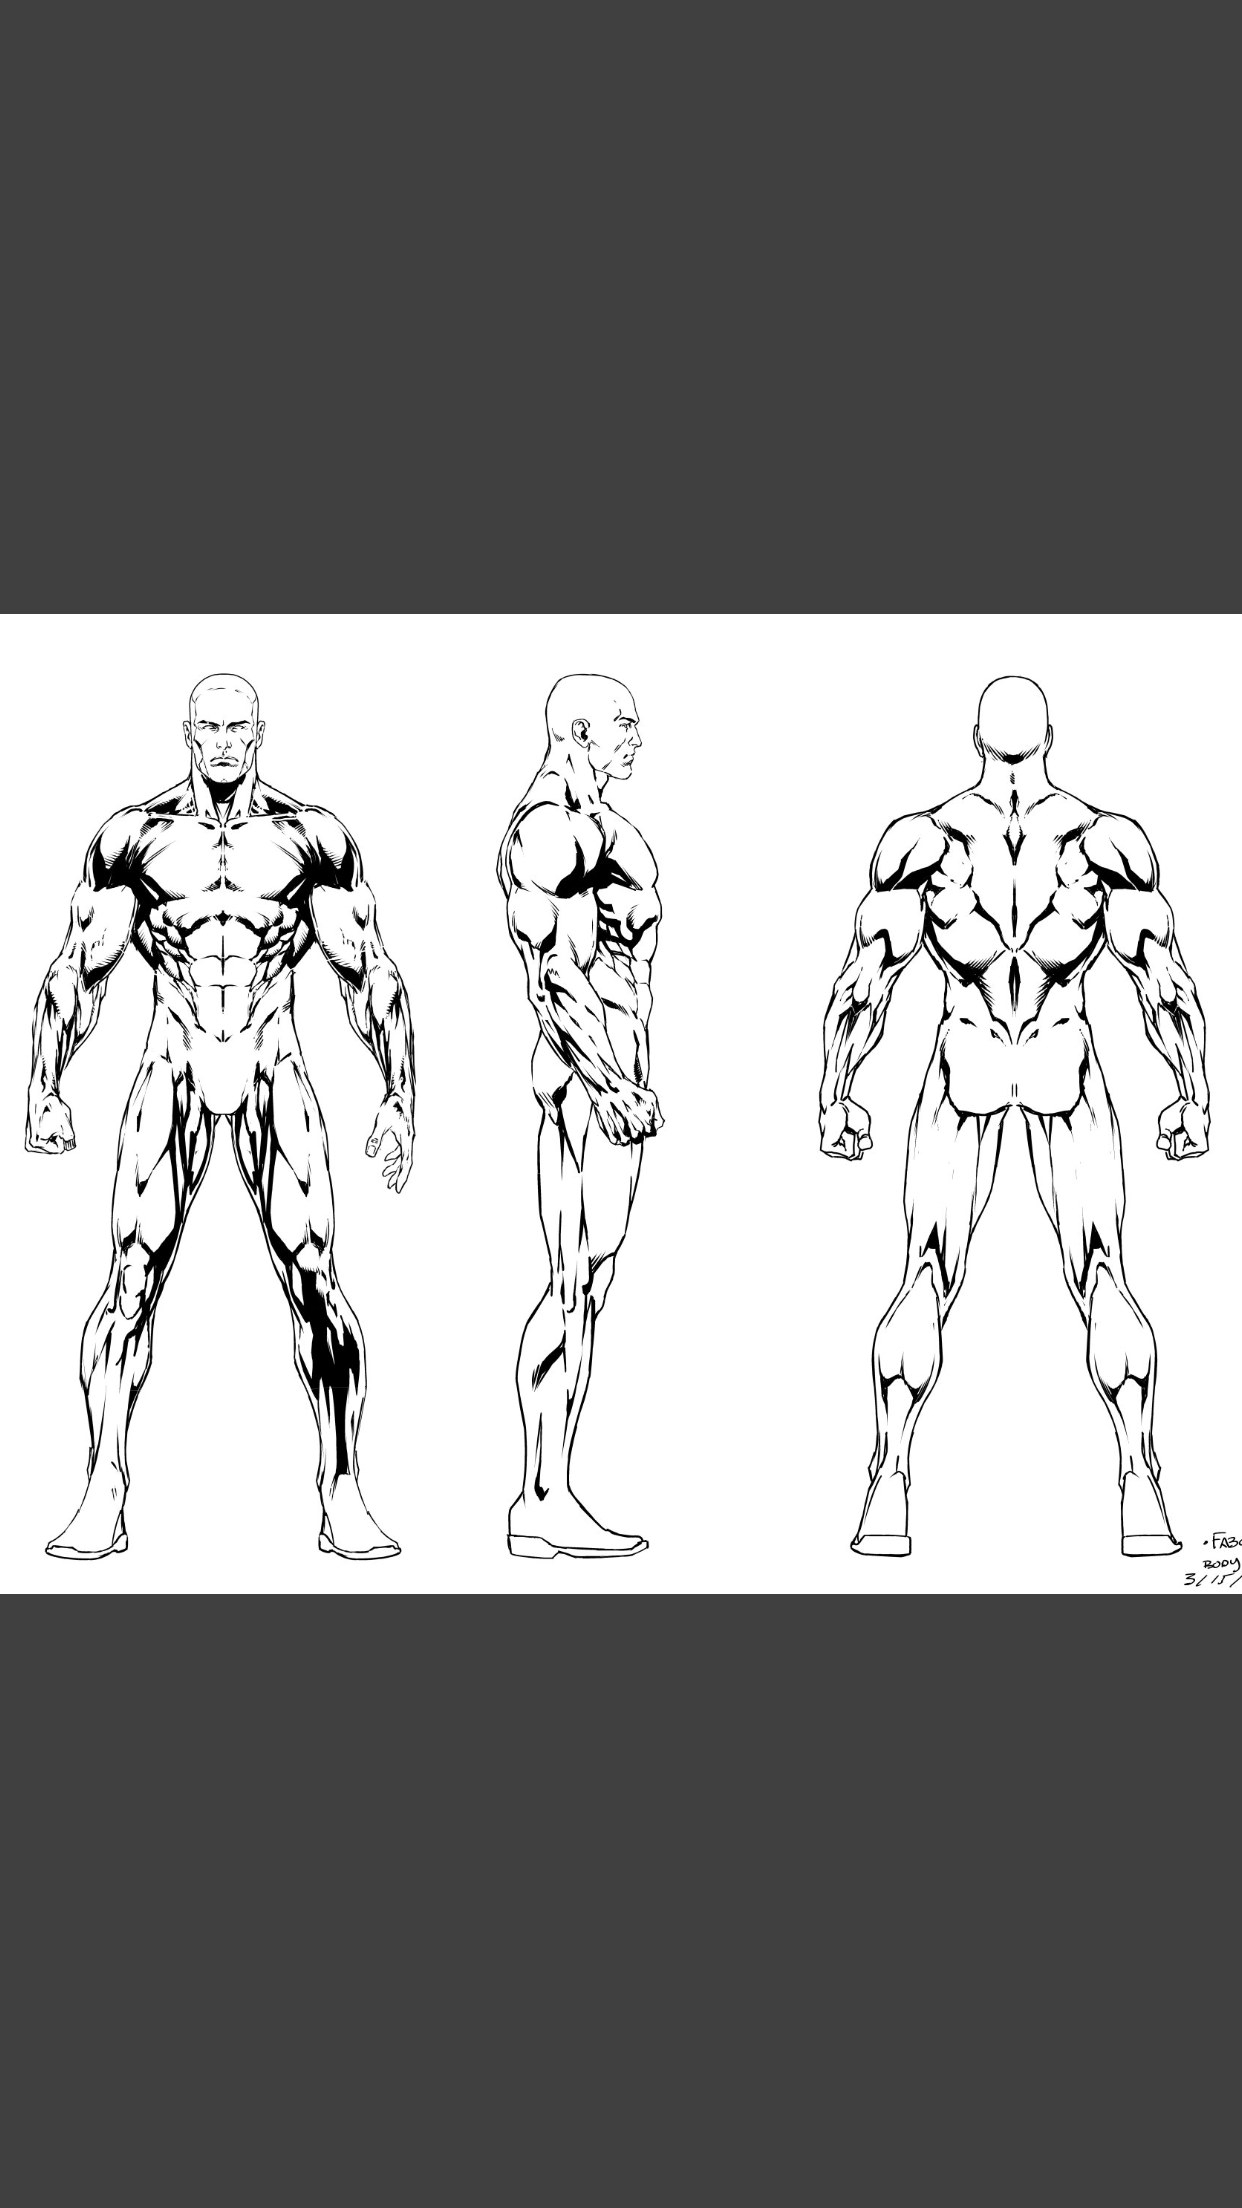 Pin By Belzkiel On Sketch Pinterest Anatomy Art Reference And